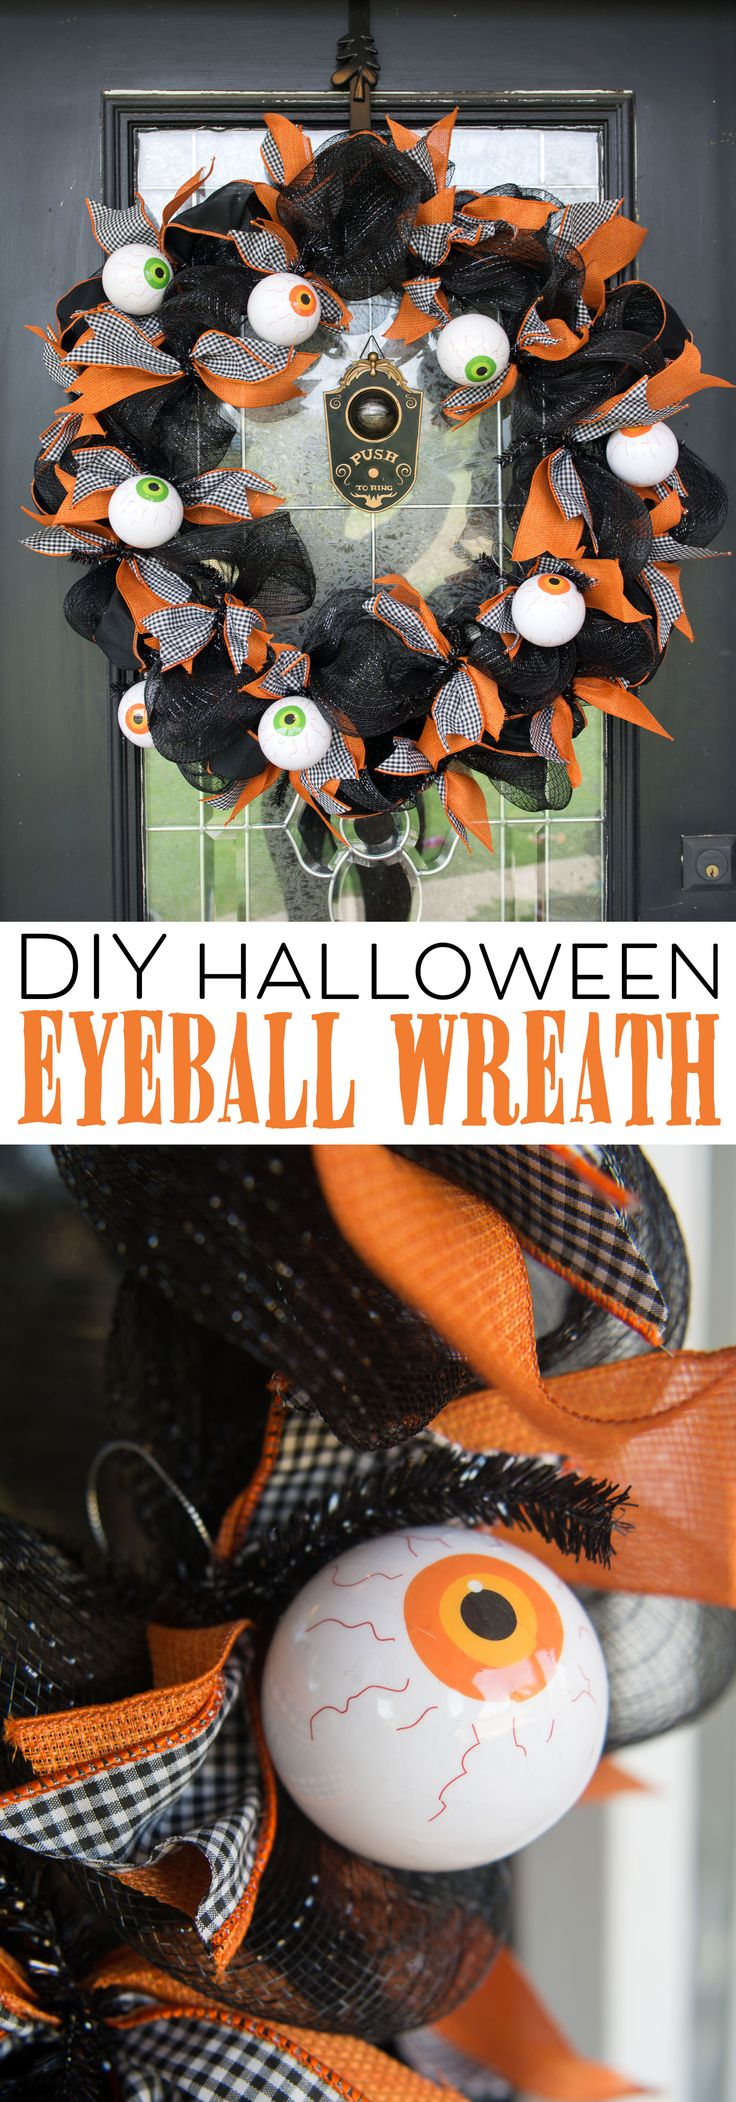 169 best Halloween images on Pinterest | Patterns, DIY and Autumn